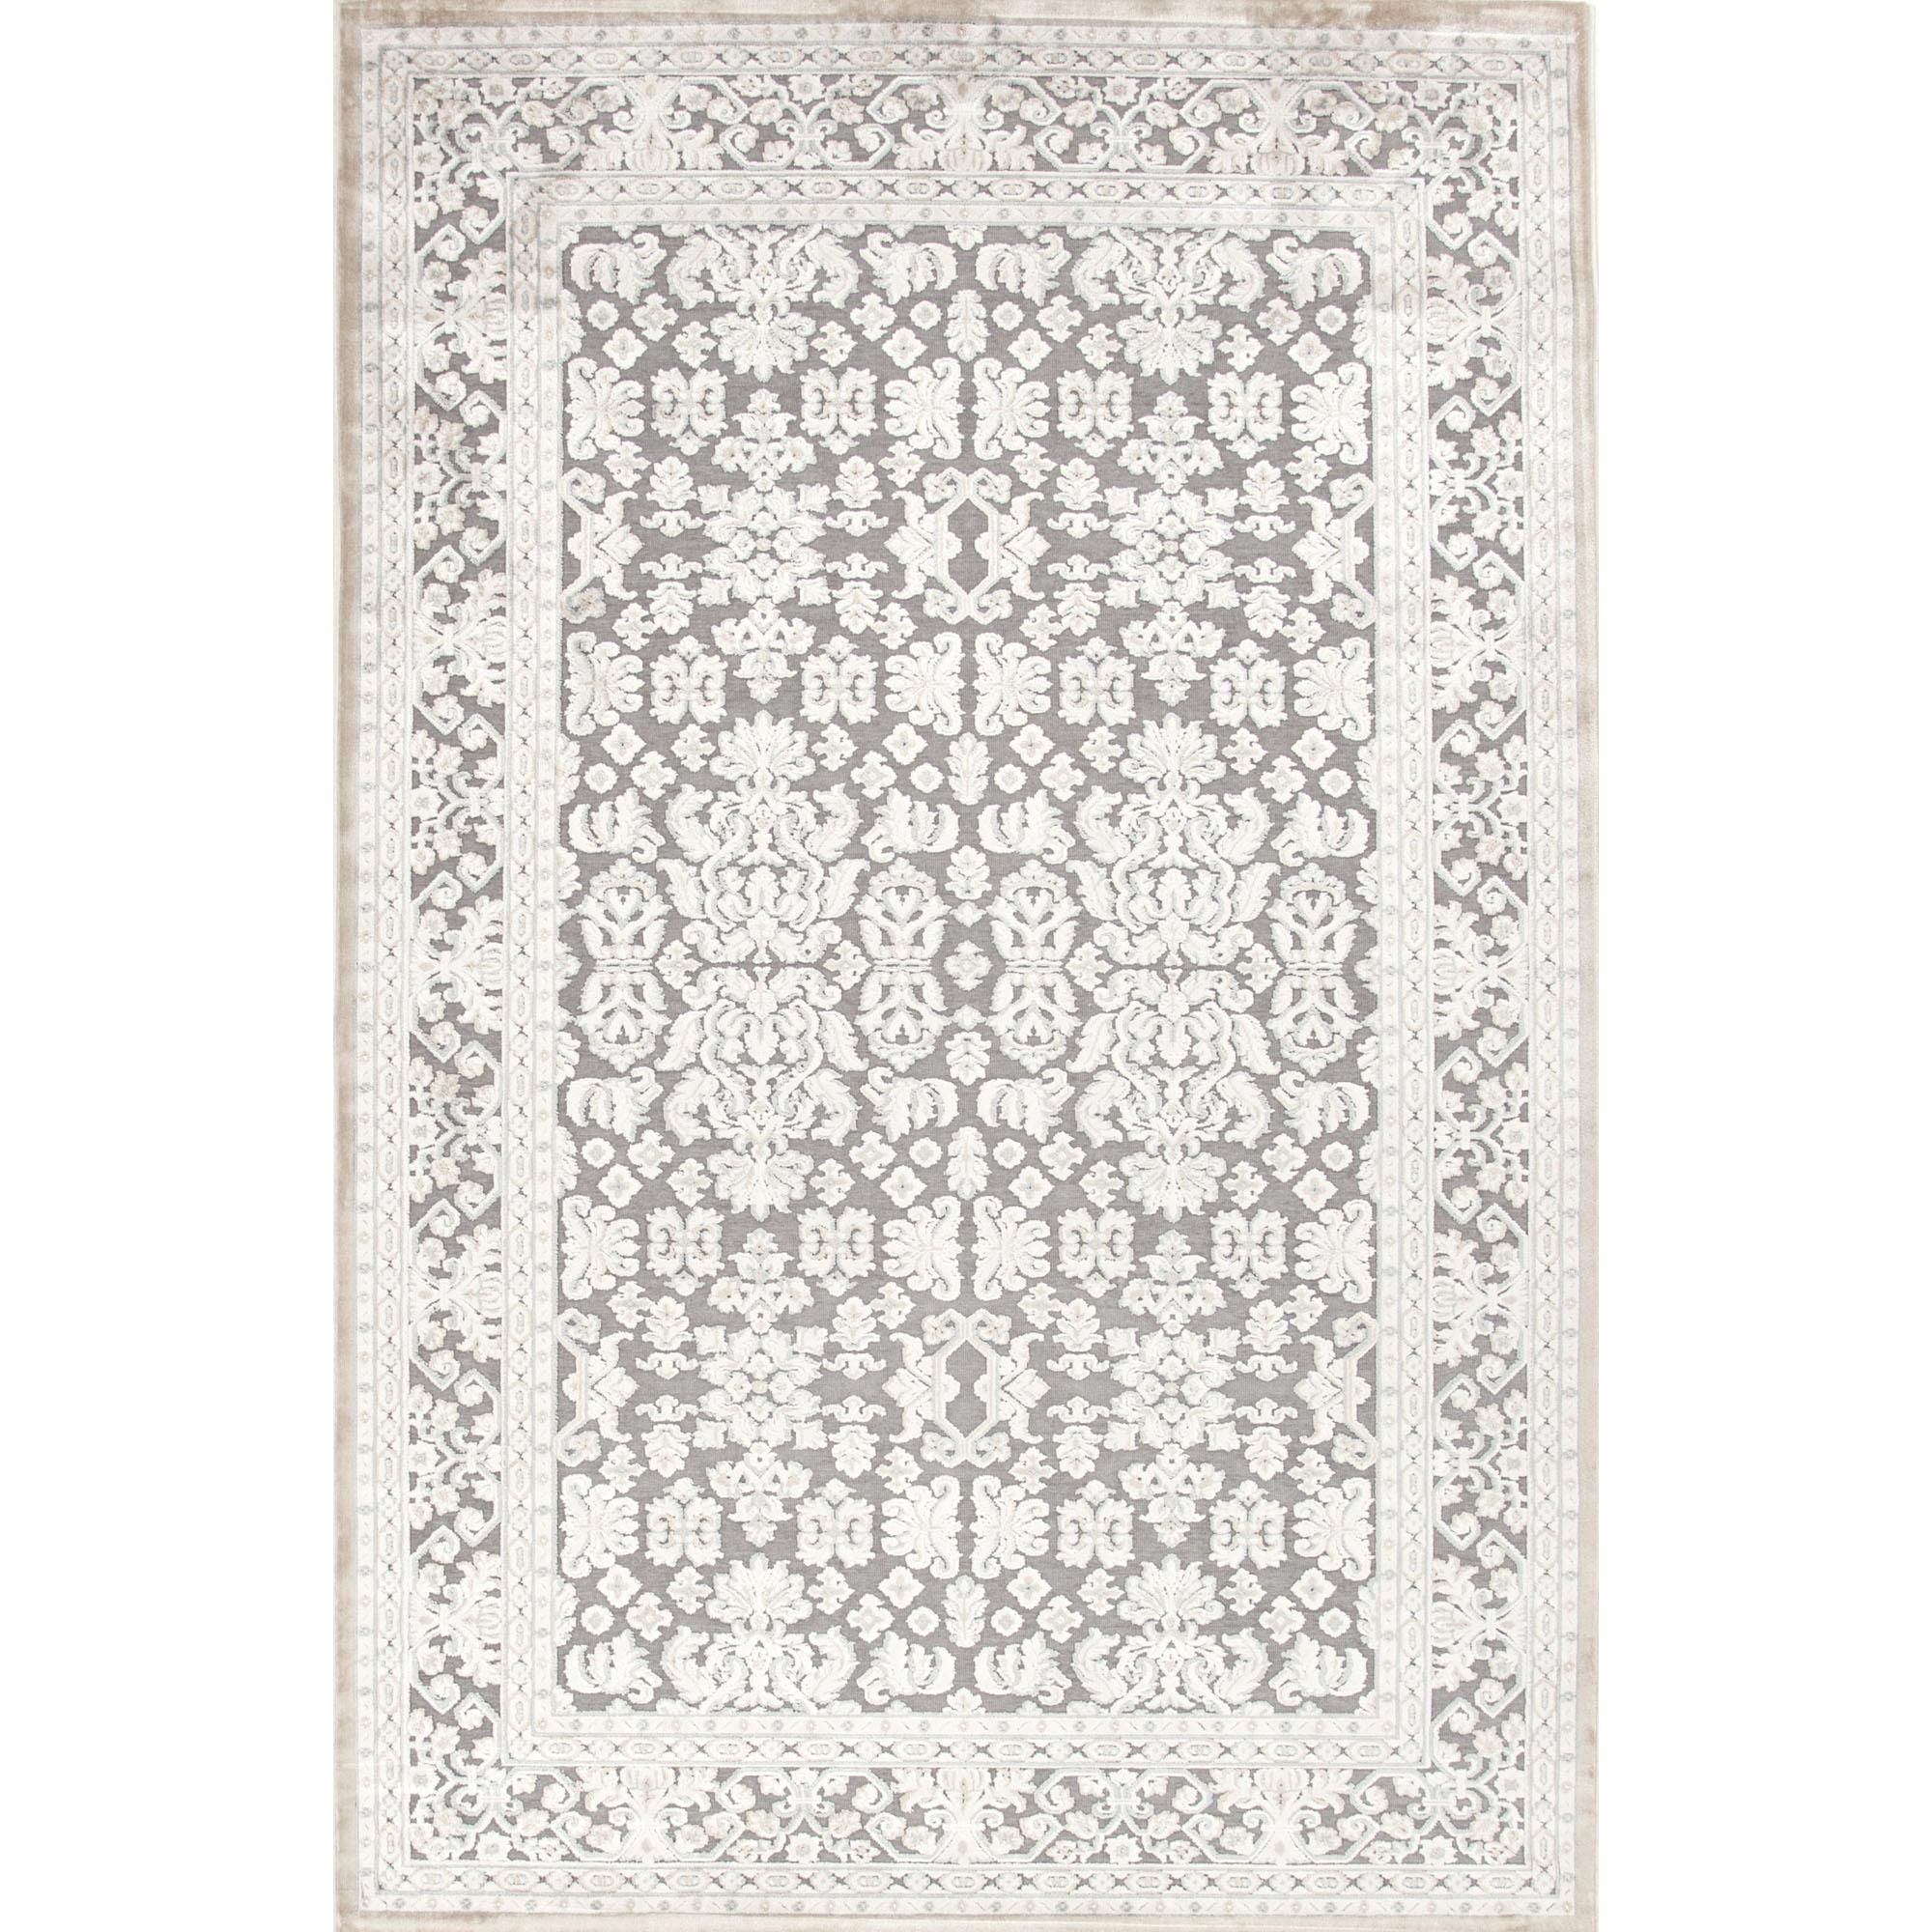 Fables 9 x 12 Rug by JAIPUR Living at Sprintz Furniture